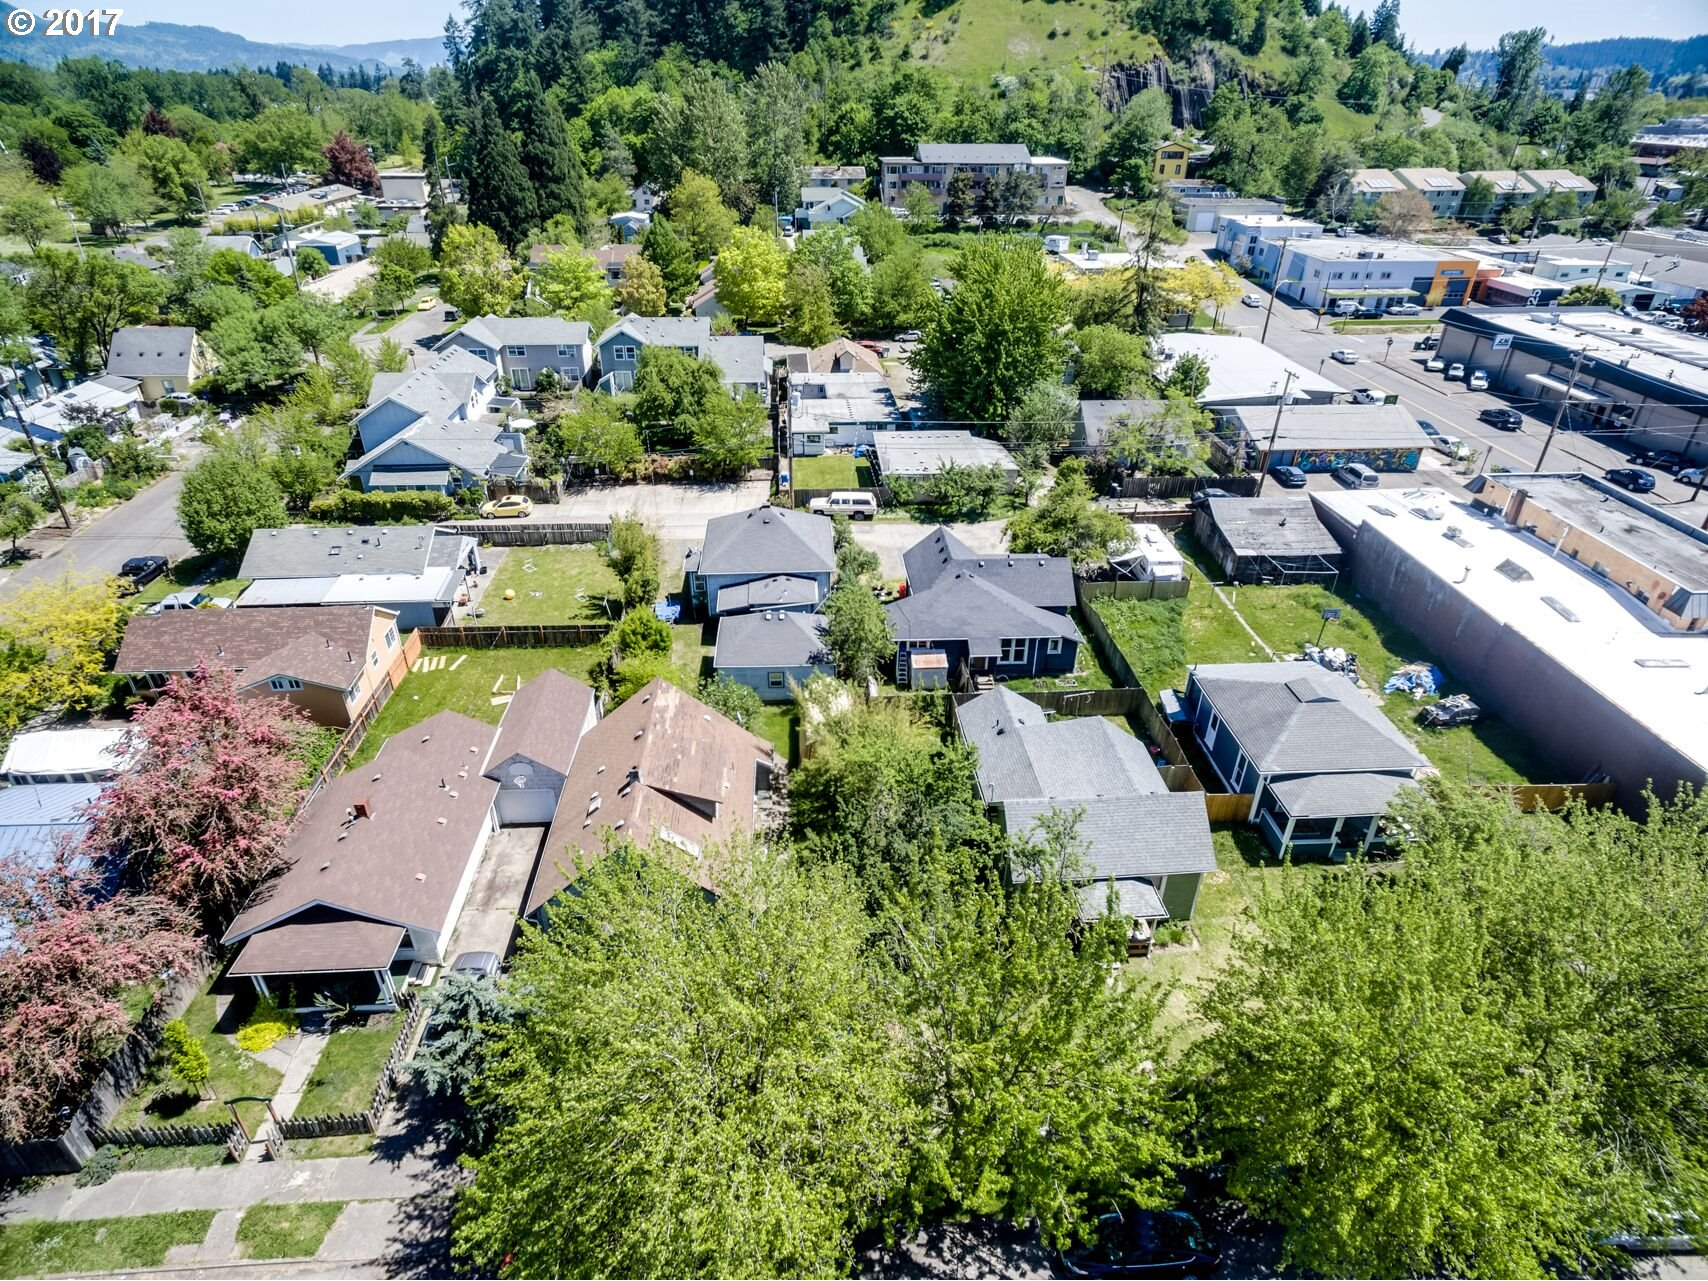 37 WASHINGTON ST, Eugene, OR 97401